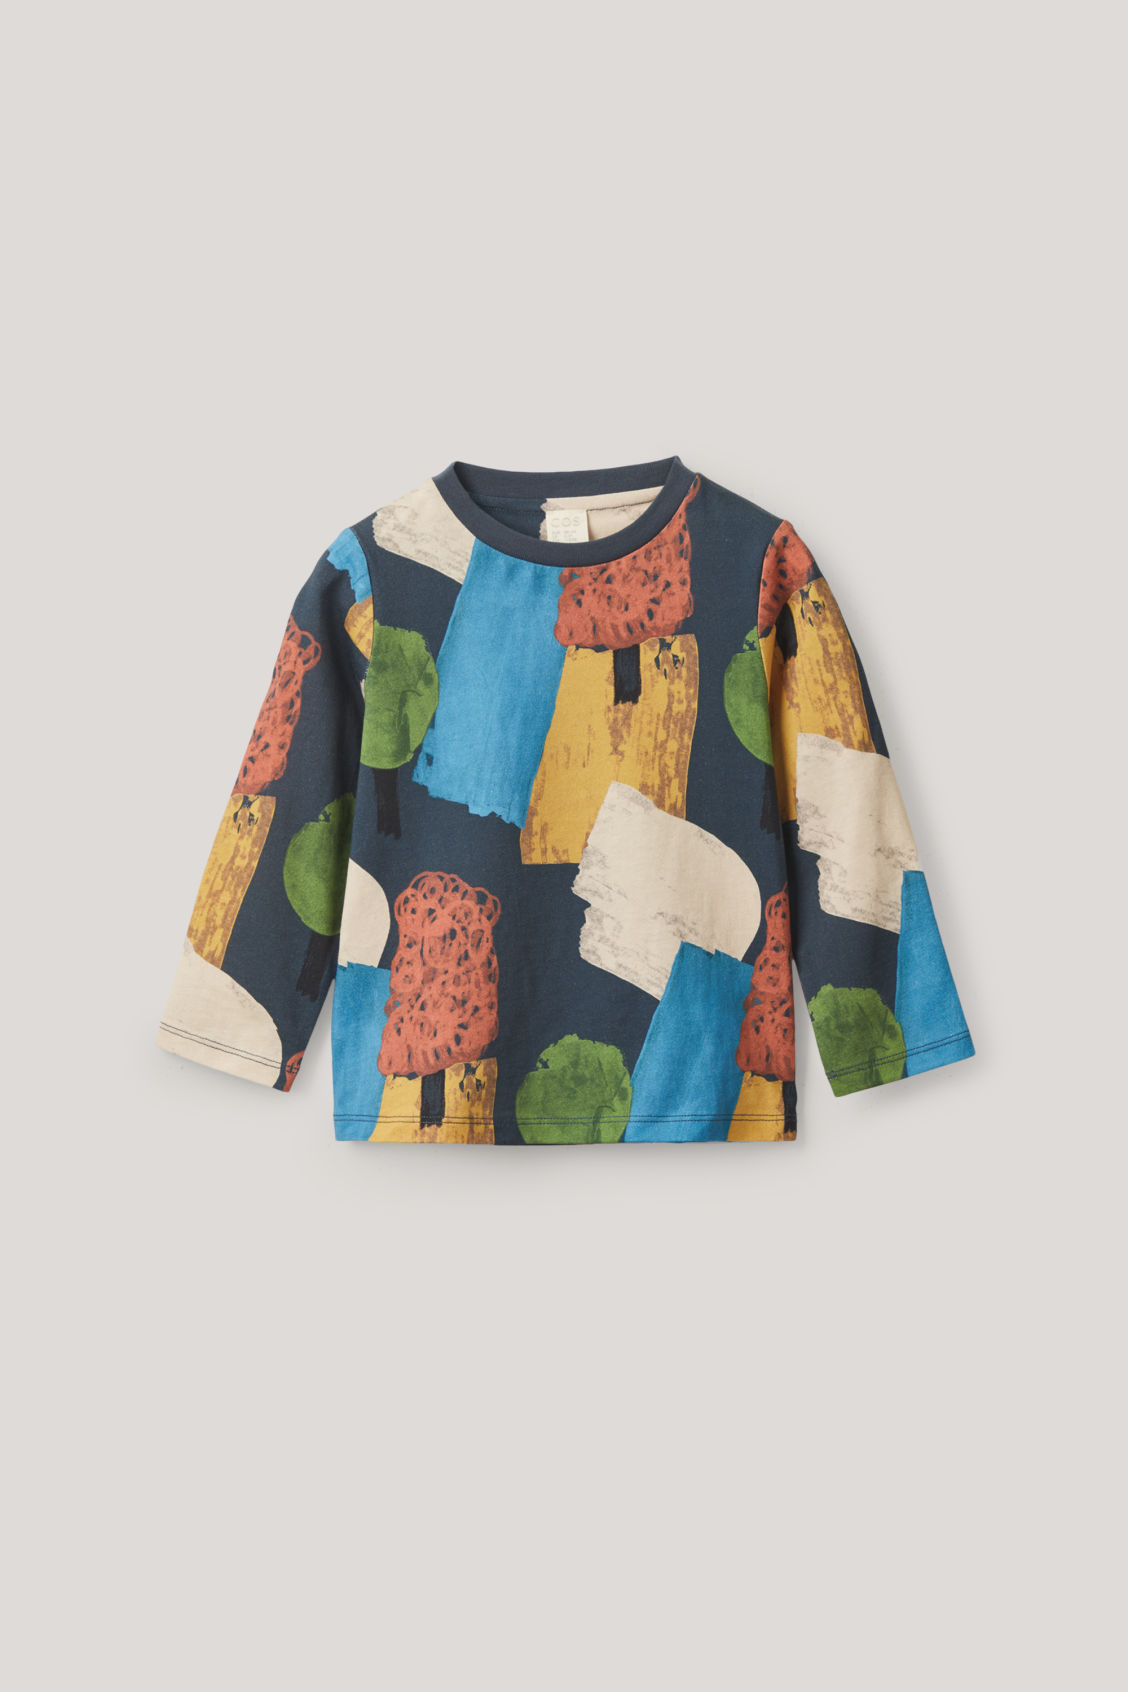 Cos Kids' Printed Cotton T-shirt In Blue